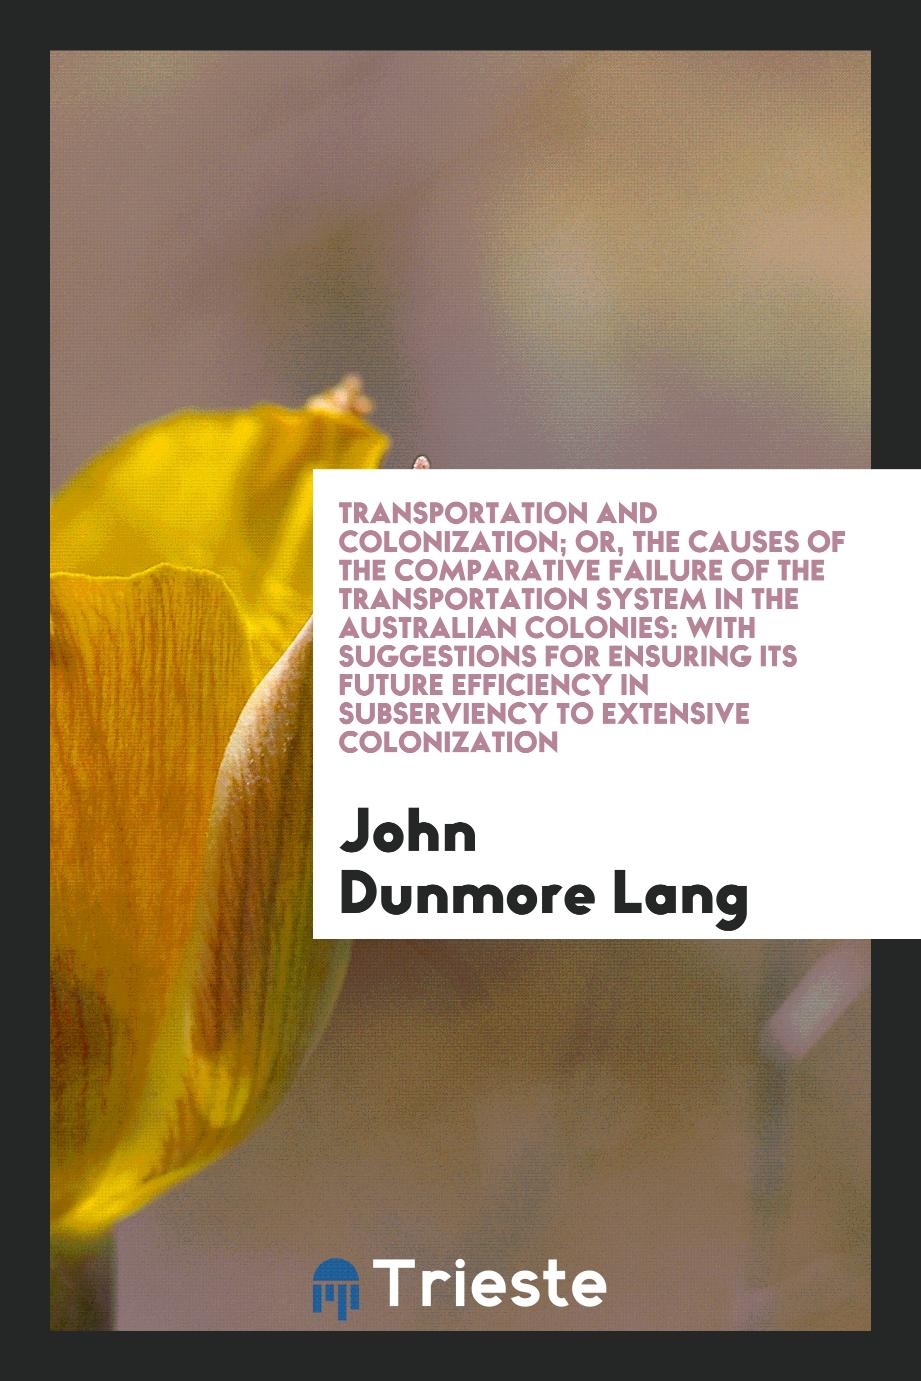 John Dunmore Lang - Transportation and Colonization; Or, the Causes of the Comparative Failure of the Transportation System in the Australian Colonies: With Suggestions for Ensuring Its Future Efficiency in Subserviency to Extensive Colonization